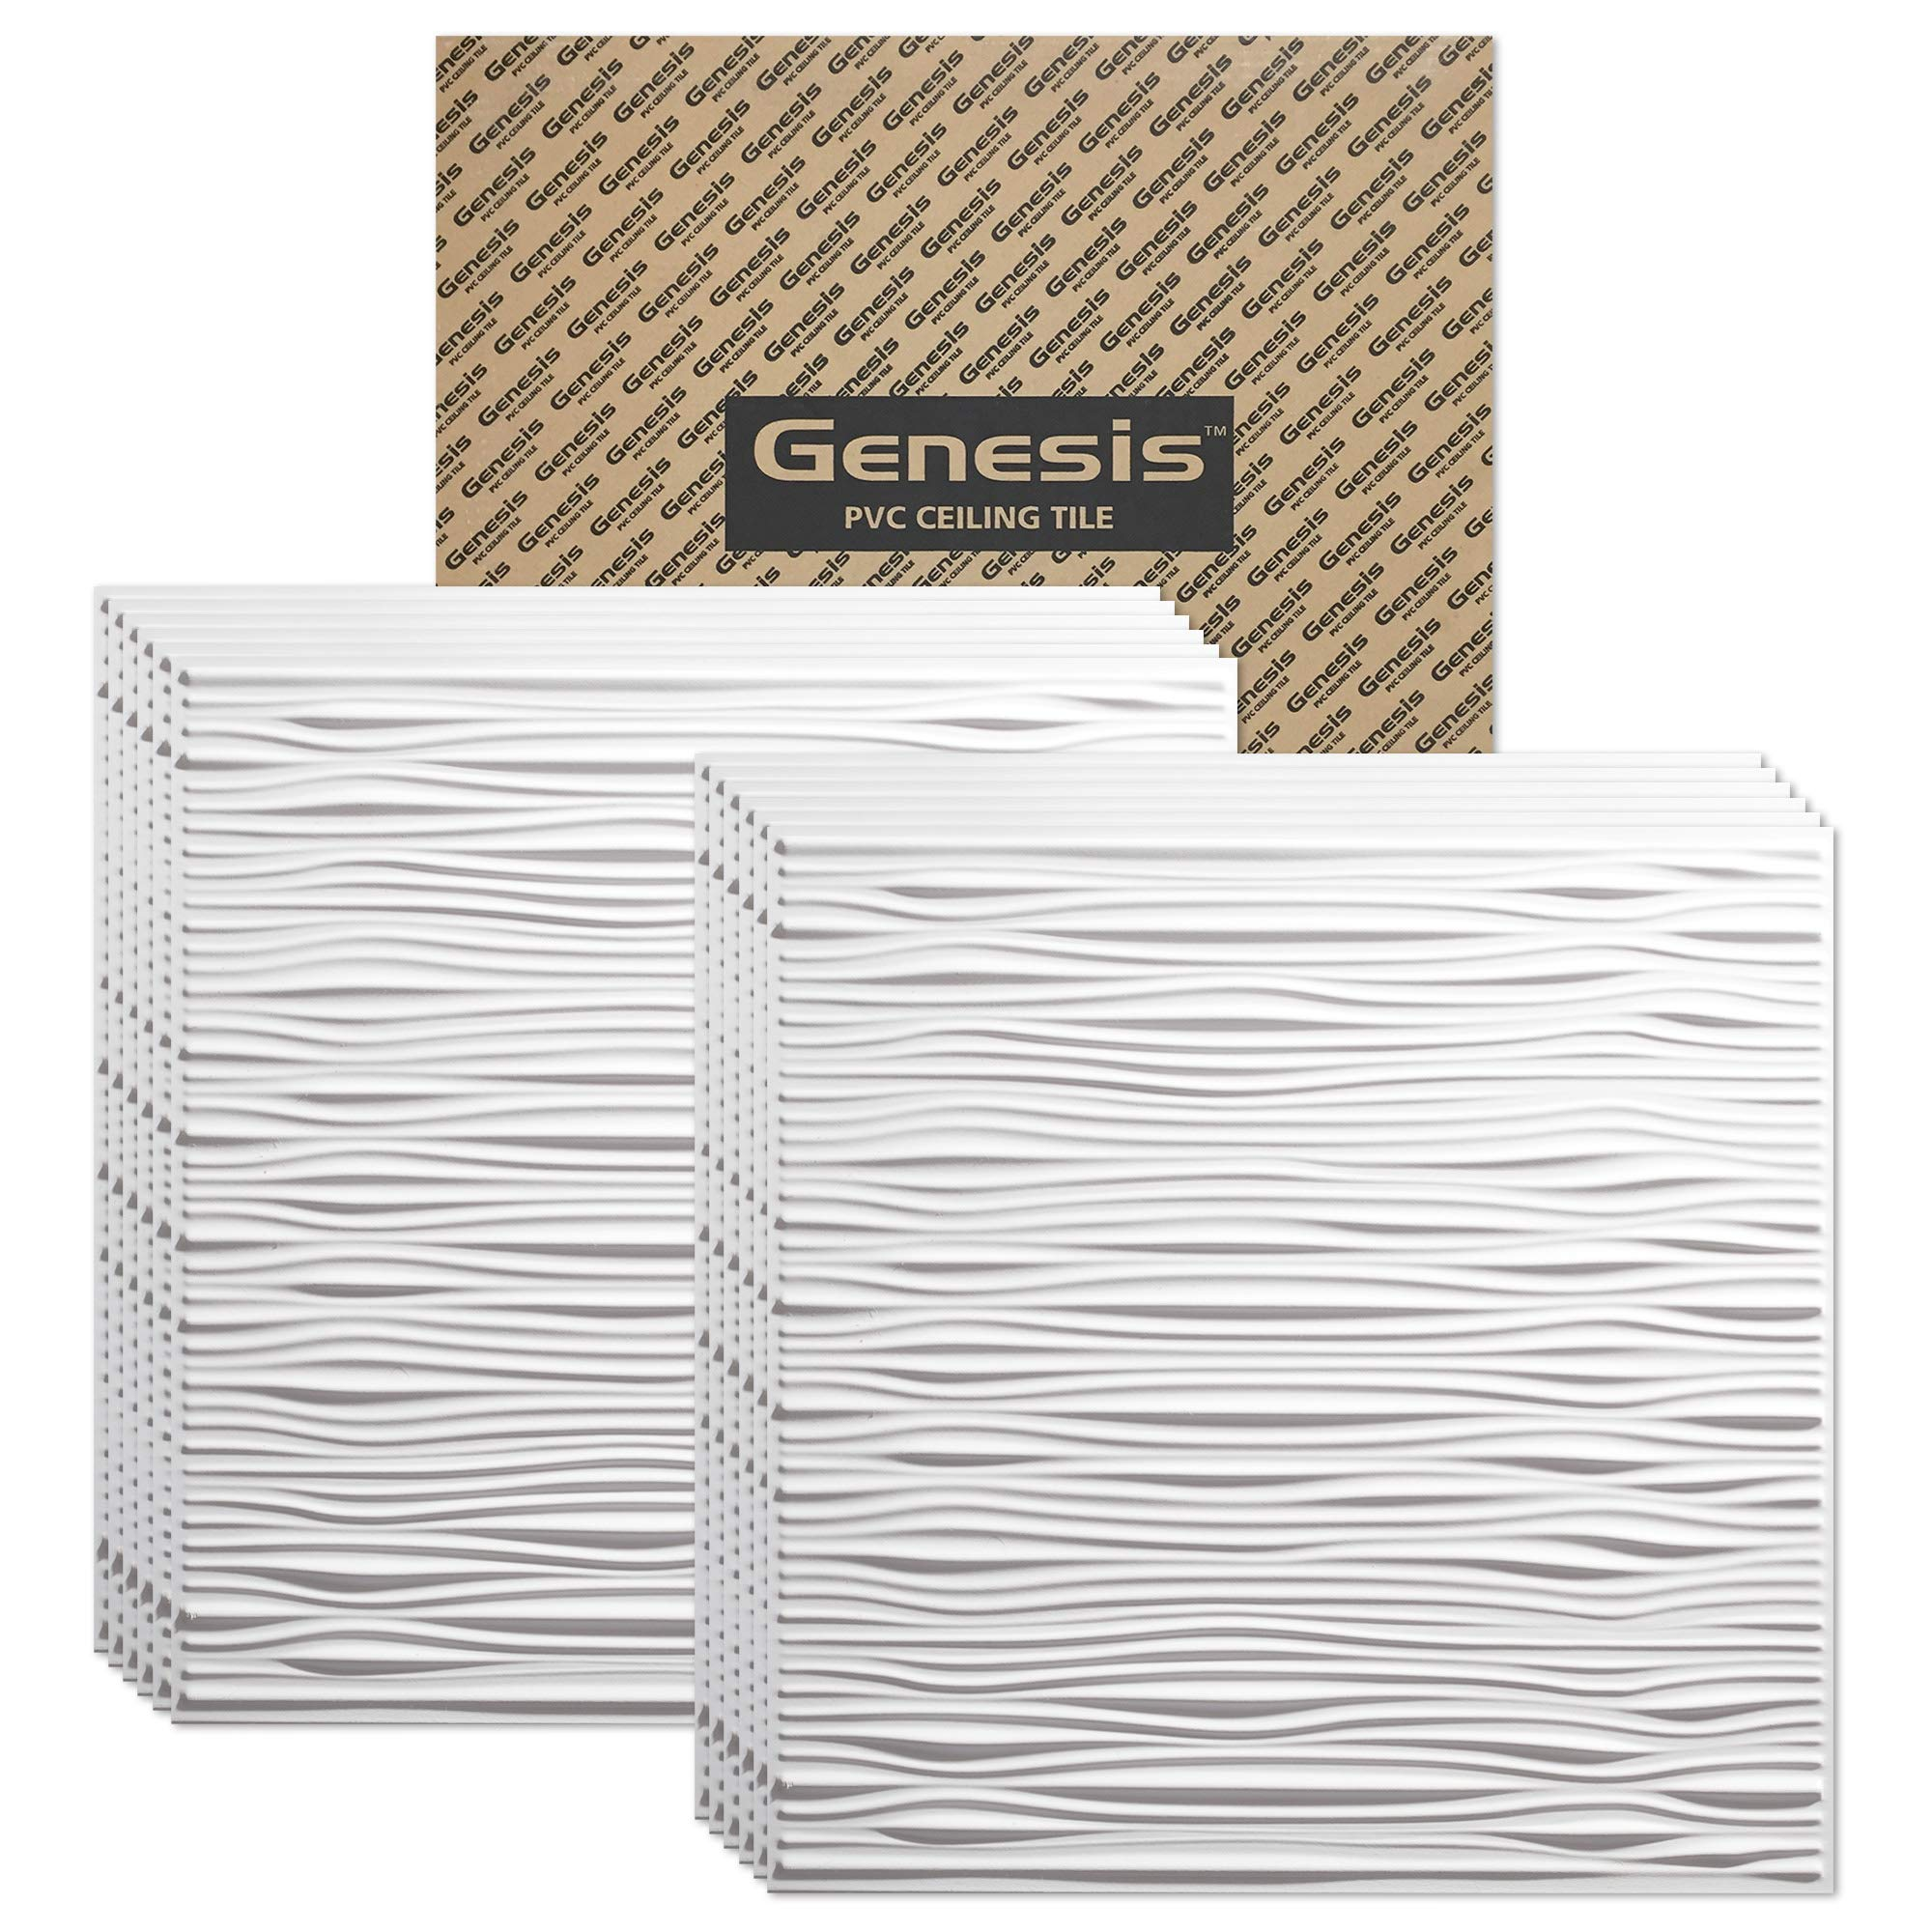 Genesis Drifts Ceiling Tiles - Easy Drop-in Installation - Waterproof, Washable and Fire-Rated - High-Grade PVC to Prevent Breakage (2' x 2' Tile, White)